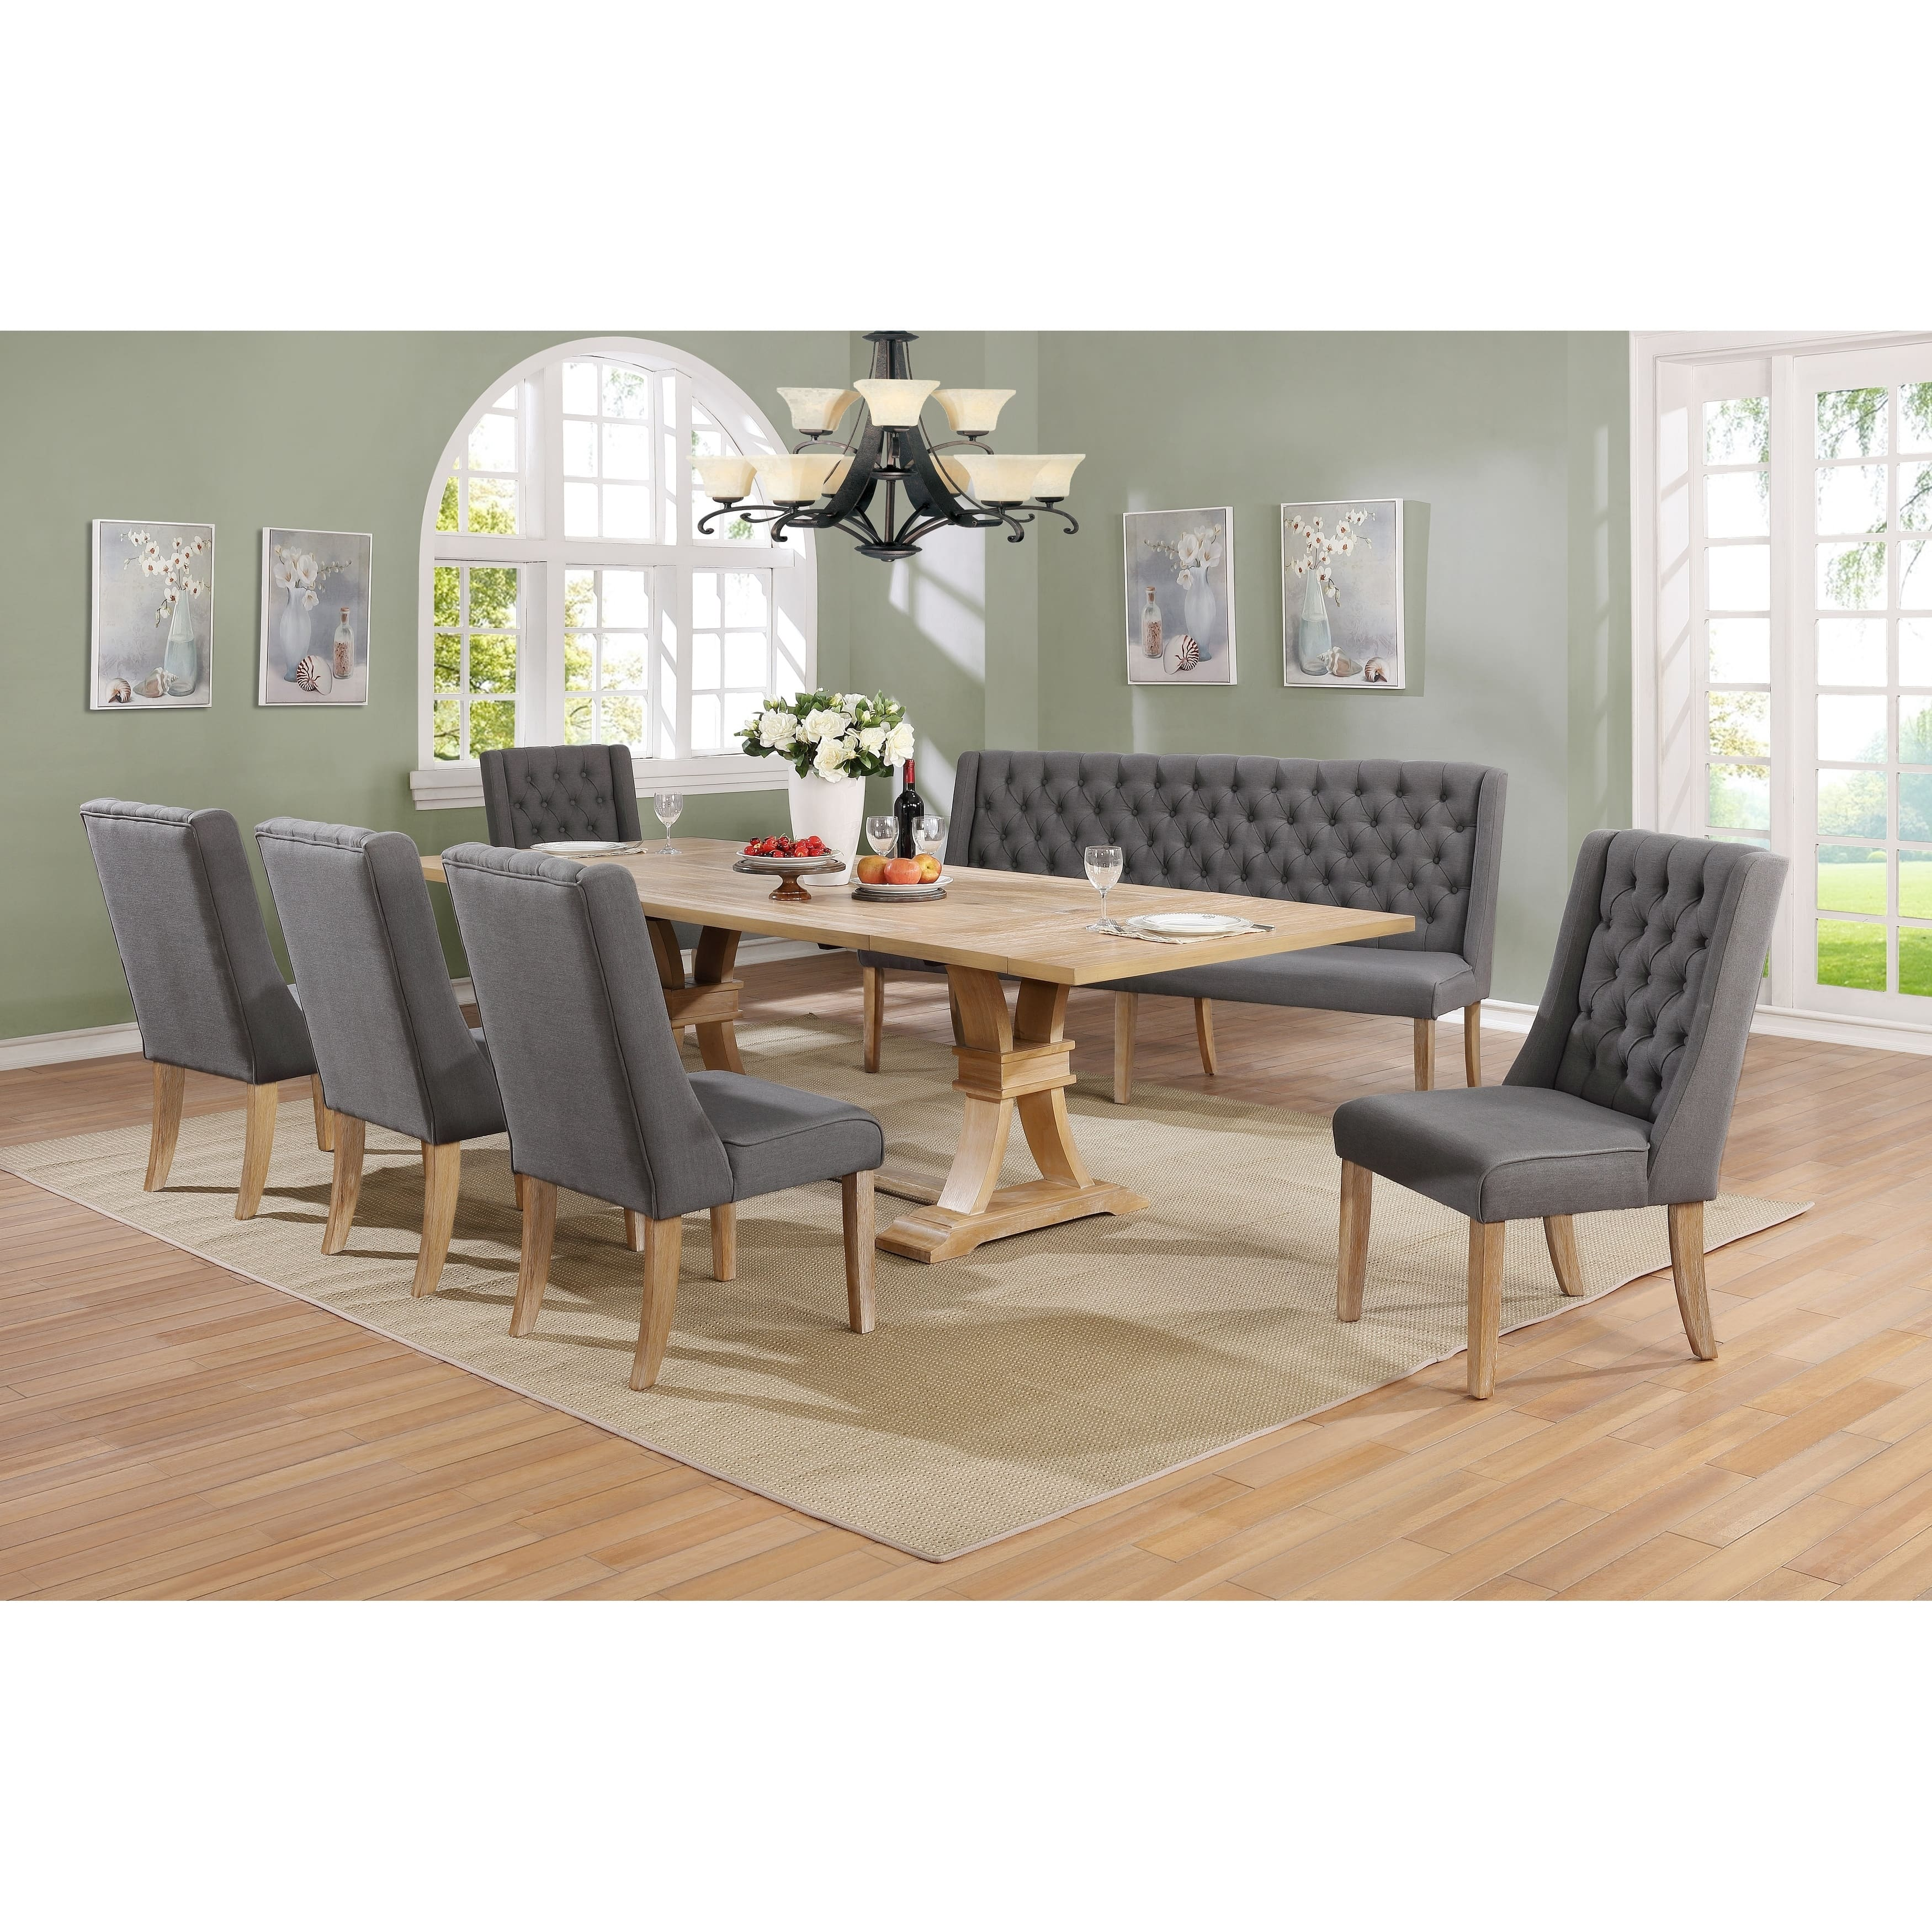 Best Quality Dining Room Furniture: Buy Kitchen & Dining Room Sets Online At Overstock